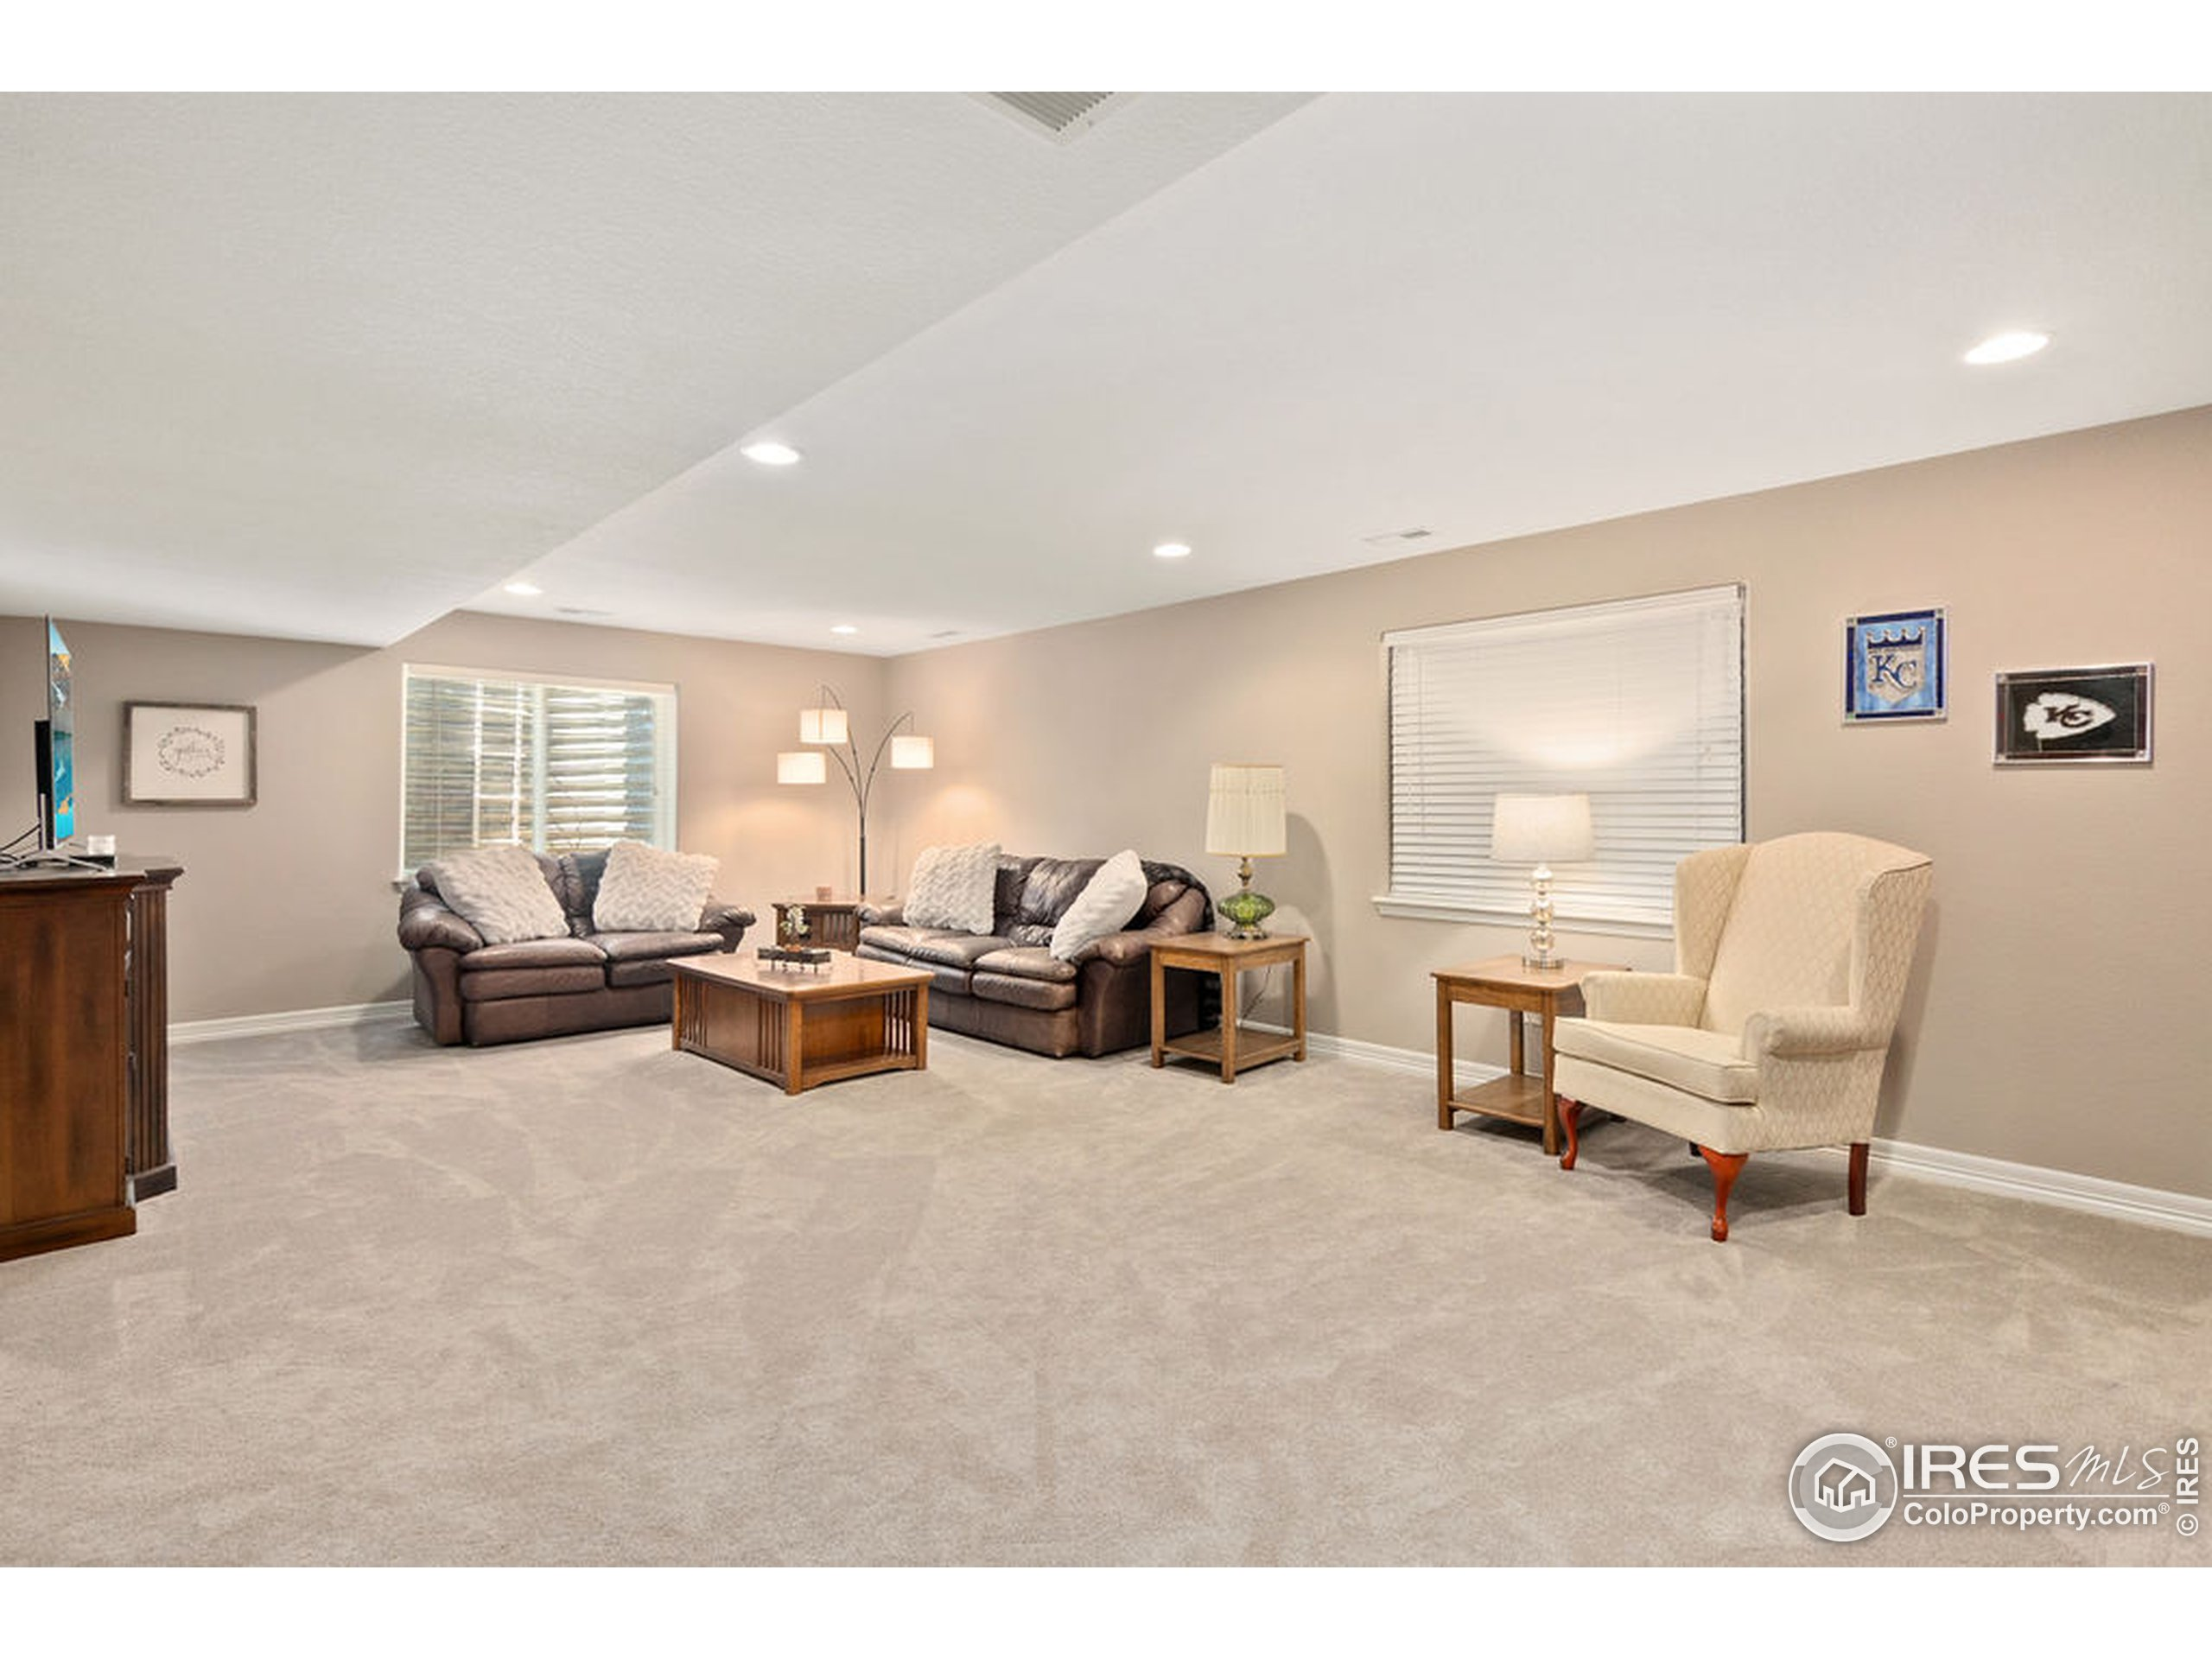 2nd living area in basement